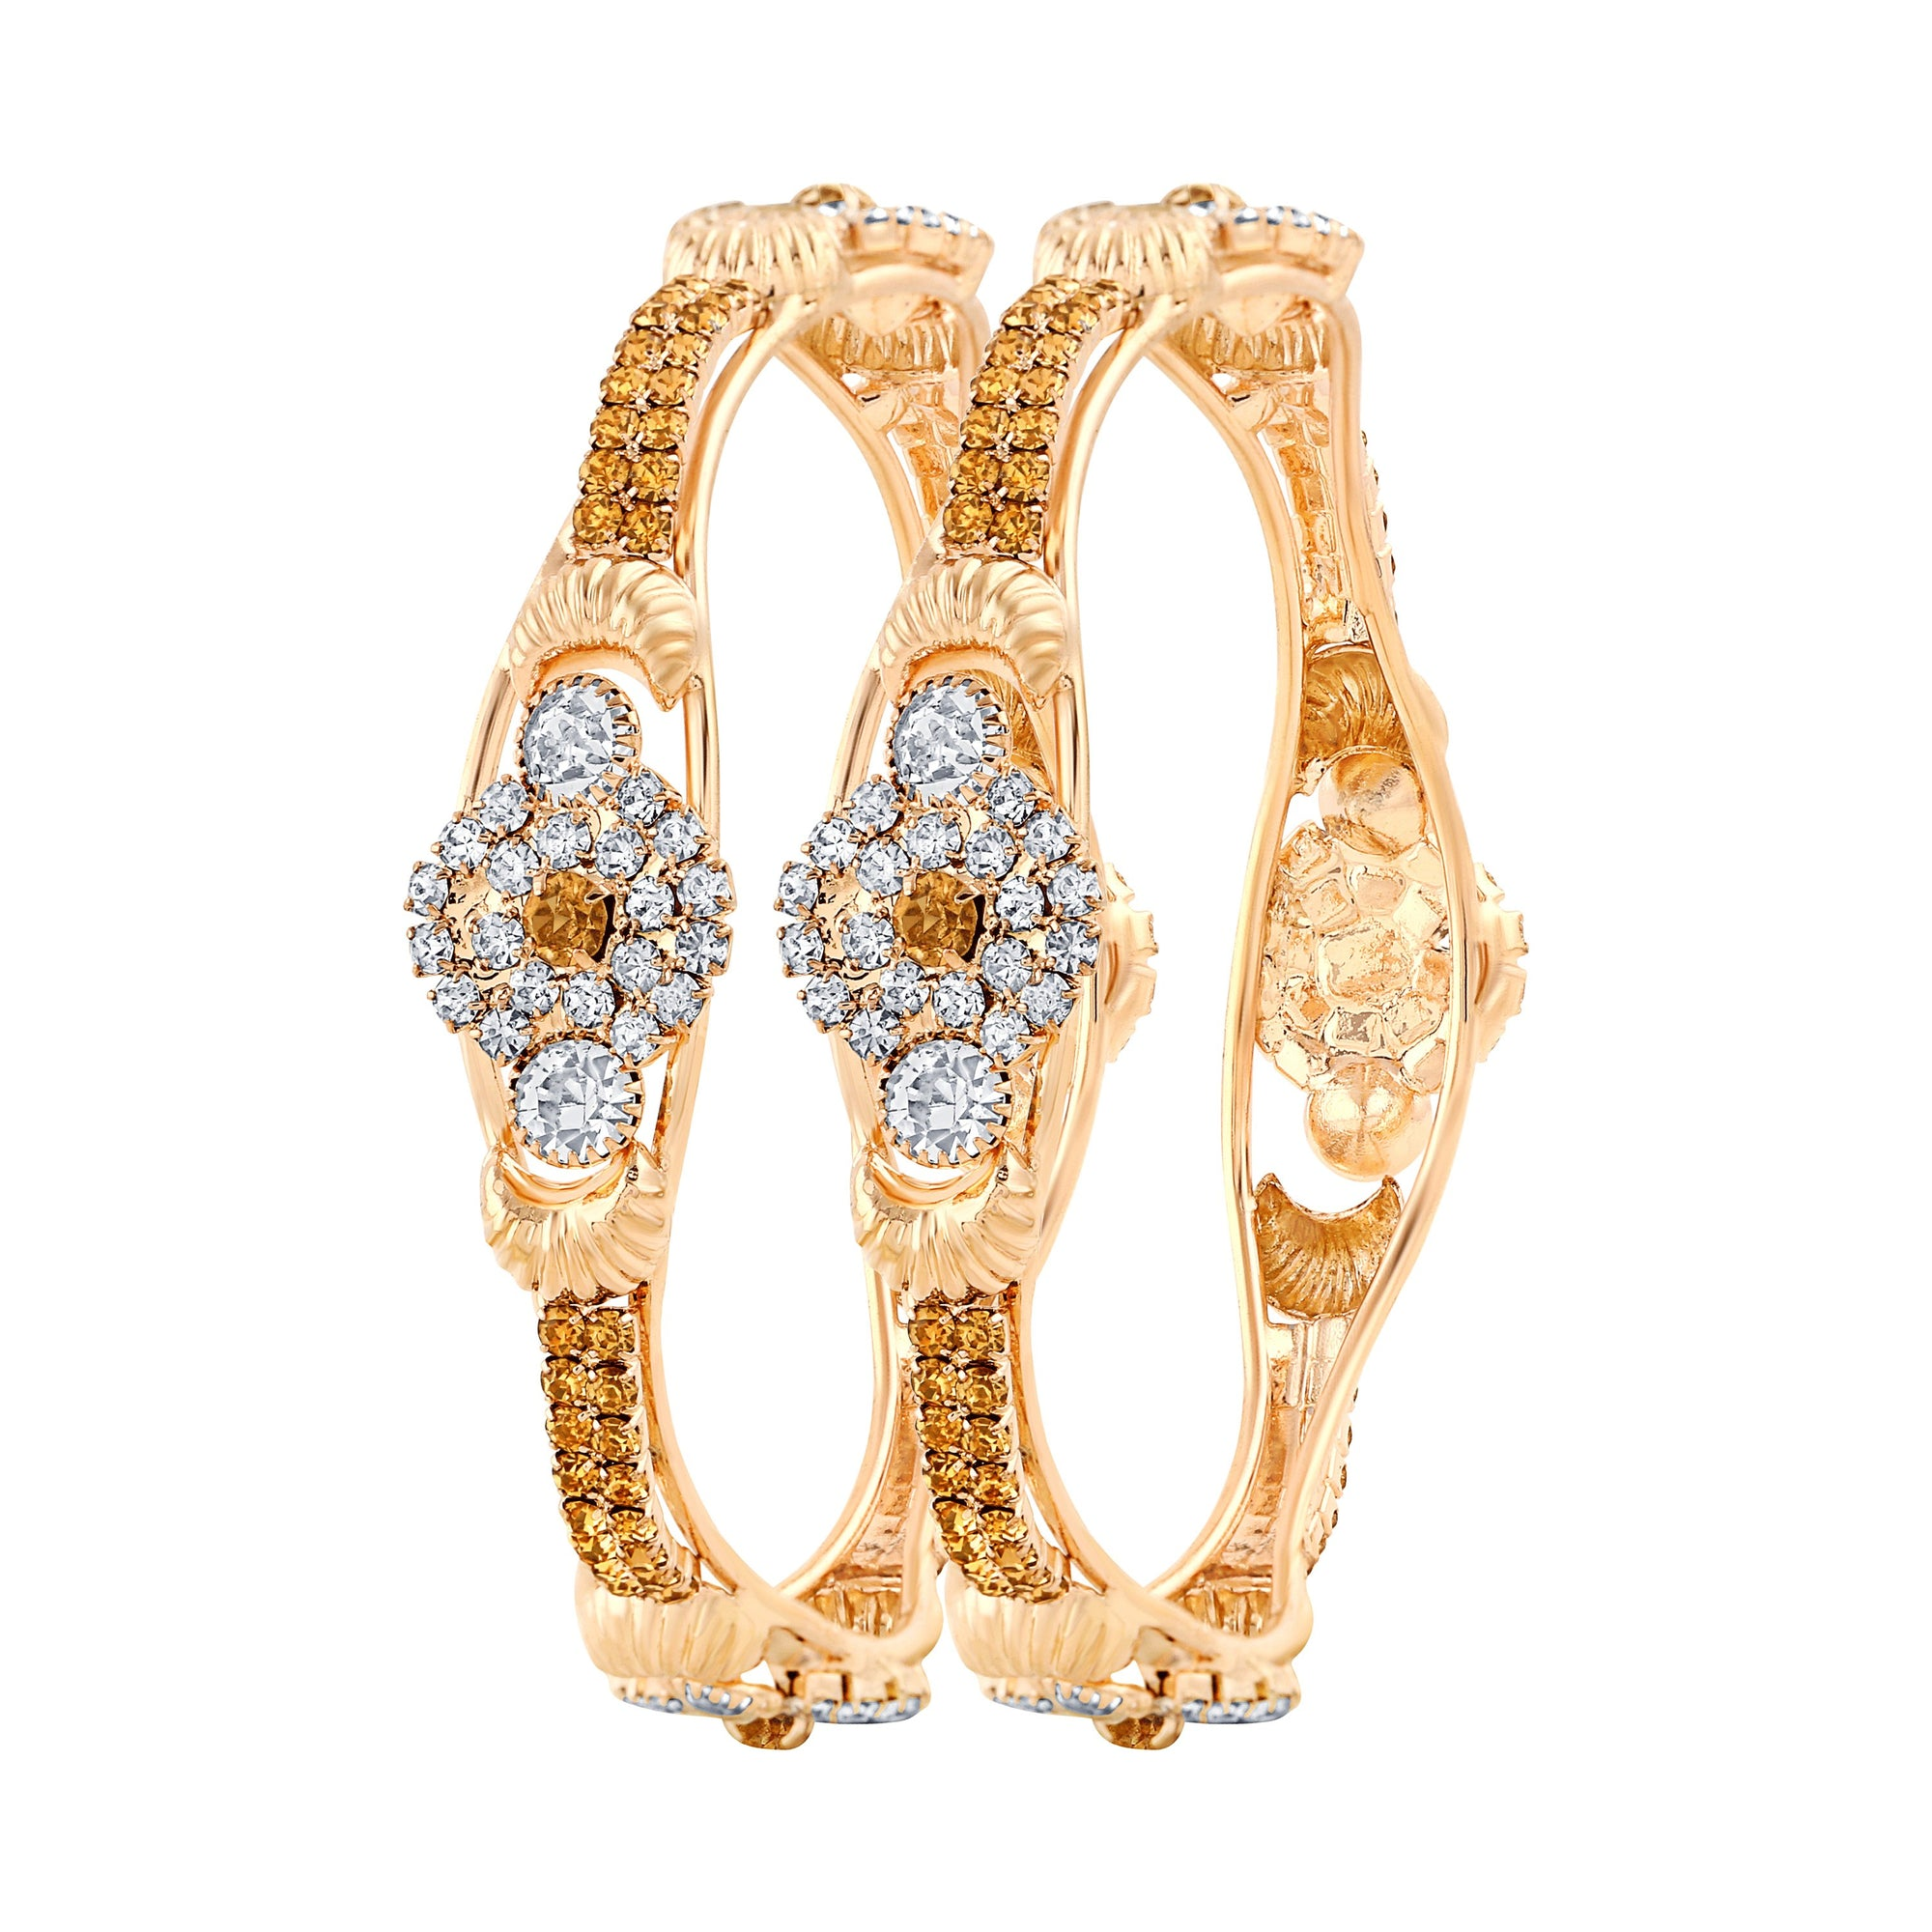 Asmitta Jewellery Gold Alloy Bangle Set -BG137